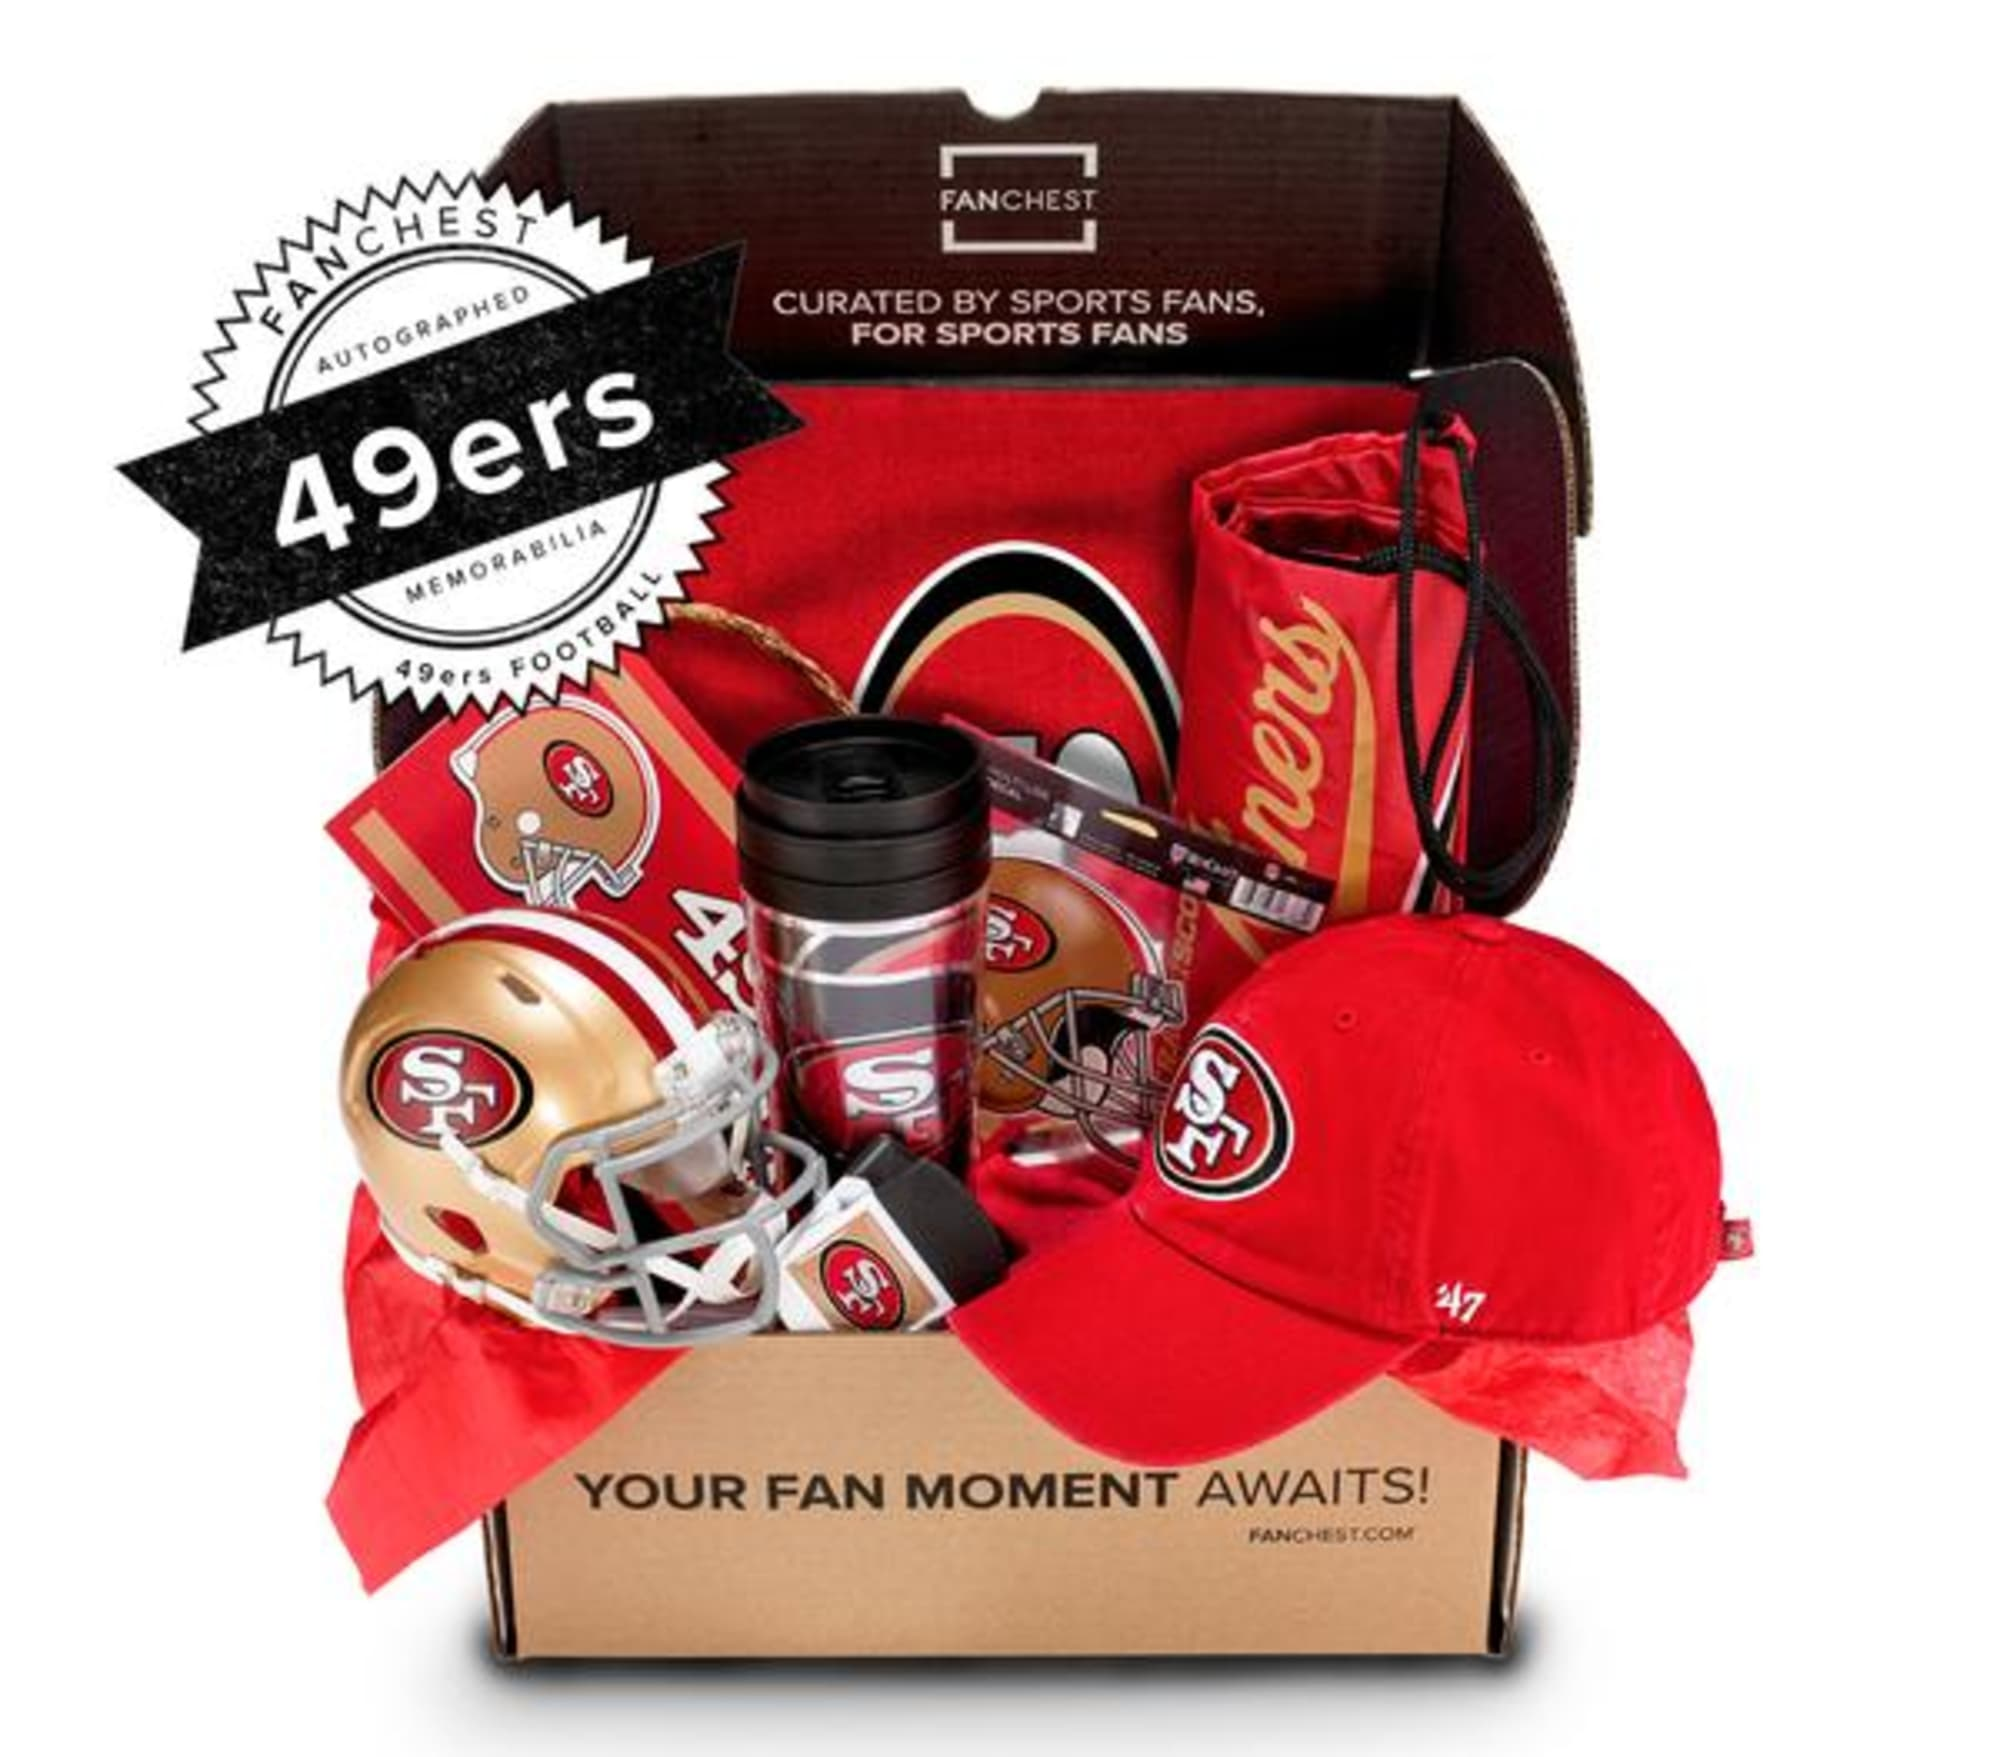 A San Francisco 49ers Fanchest is the perfect holiday gift